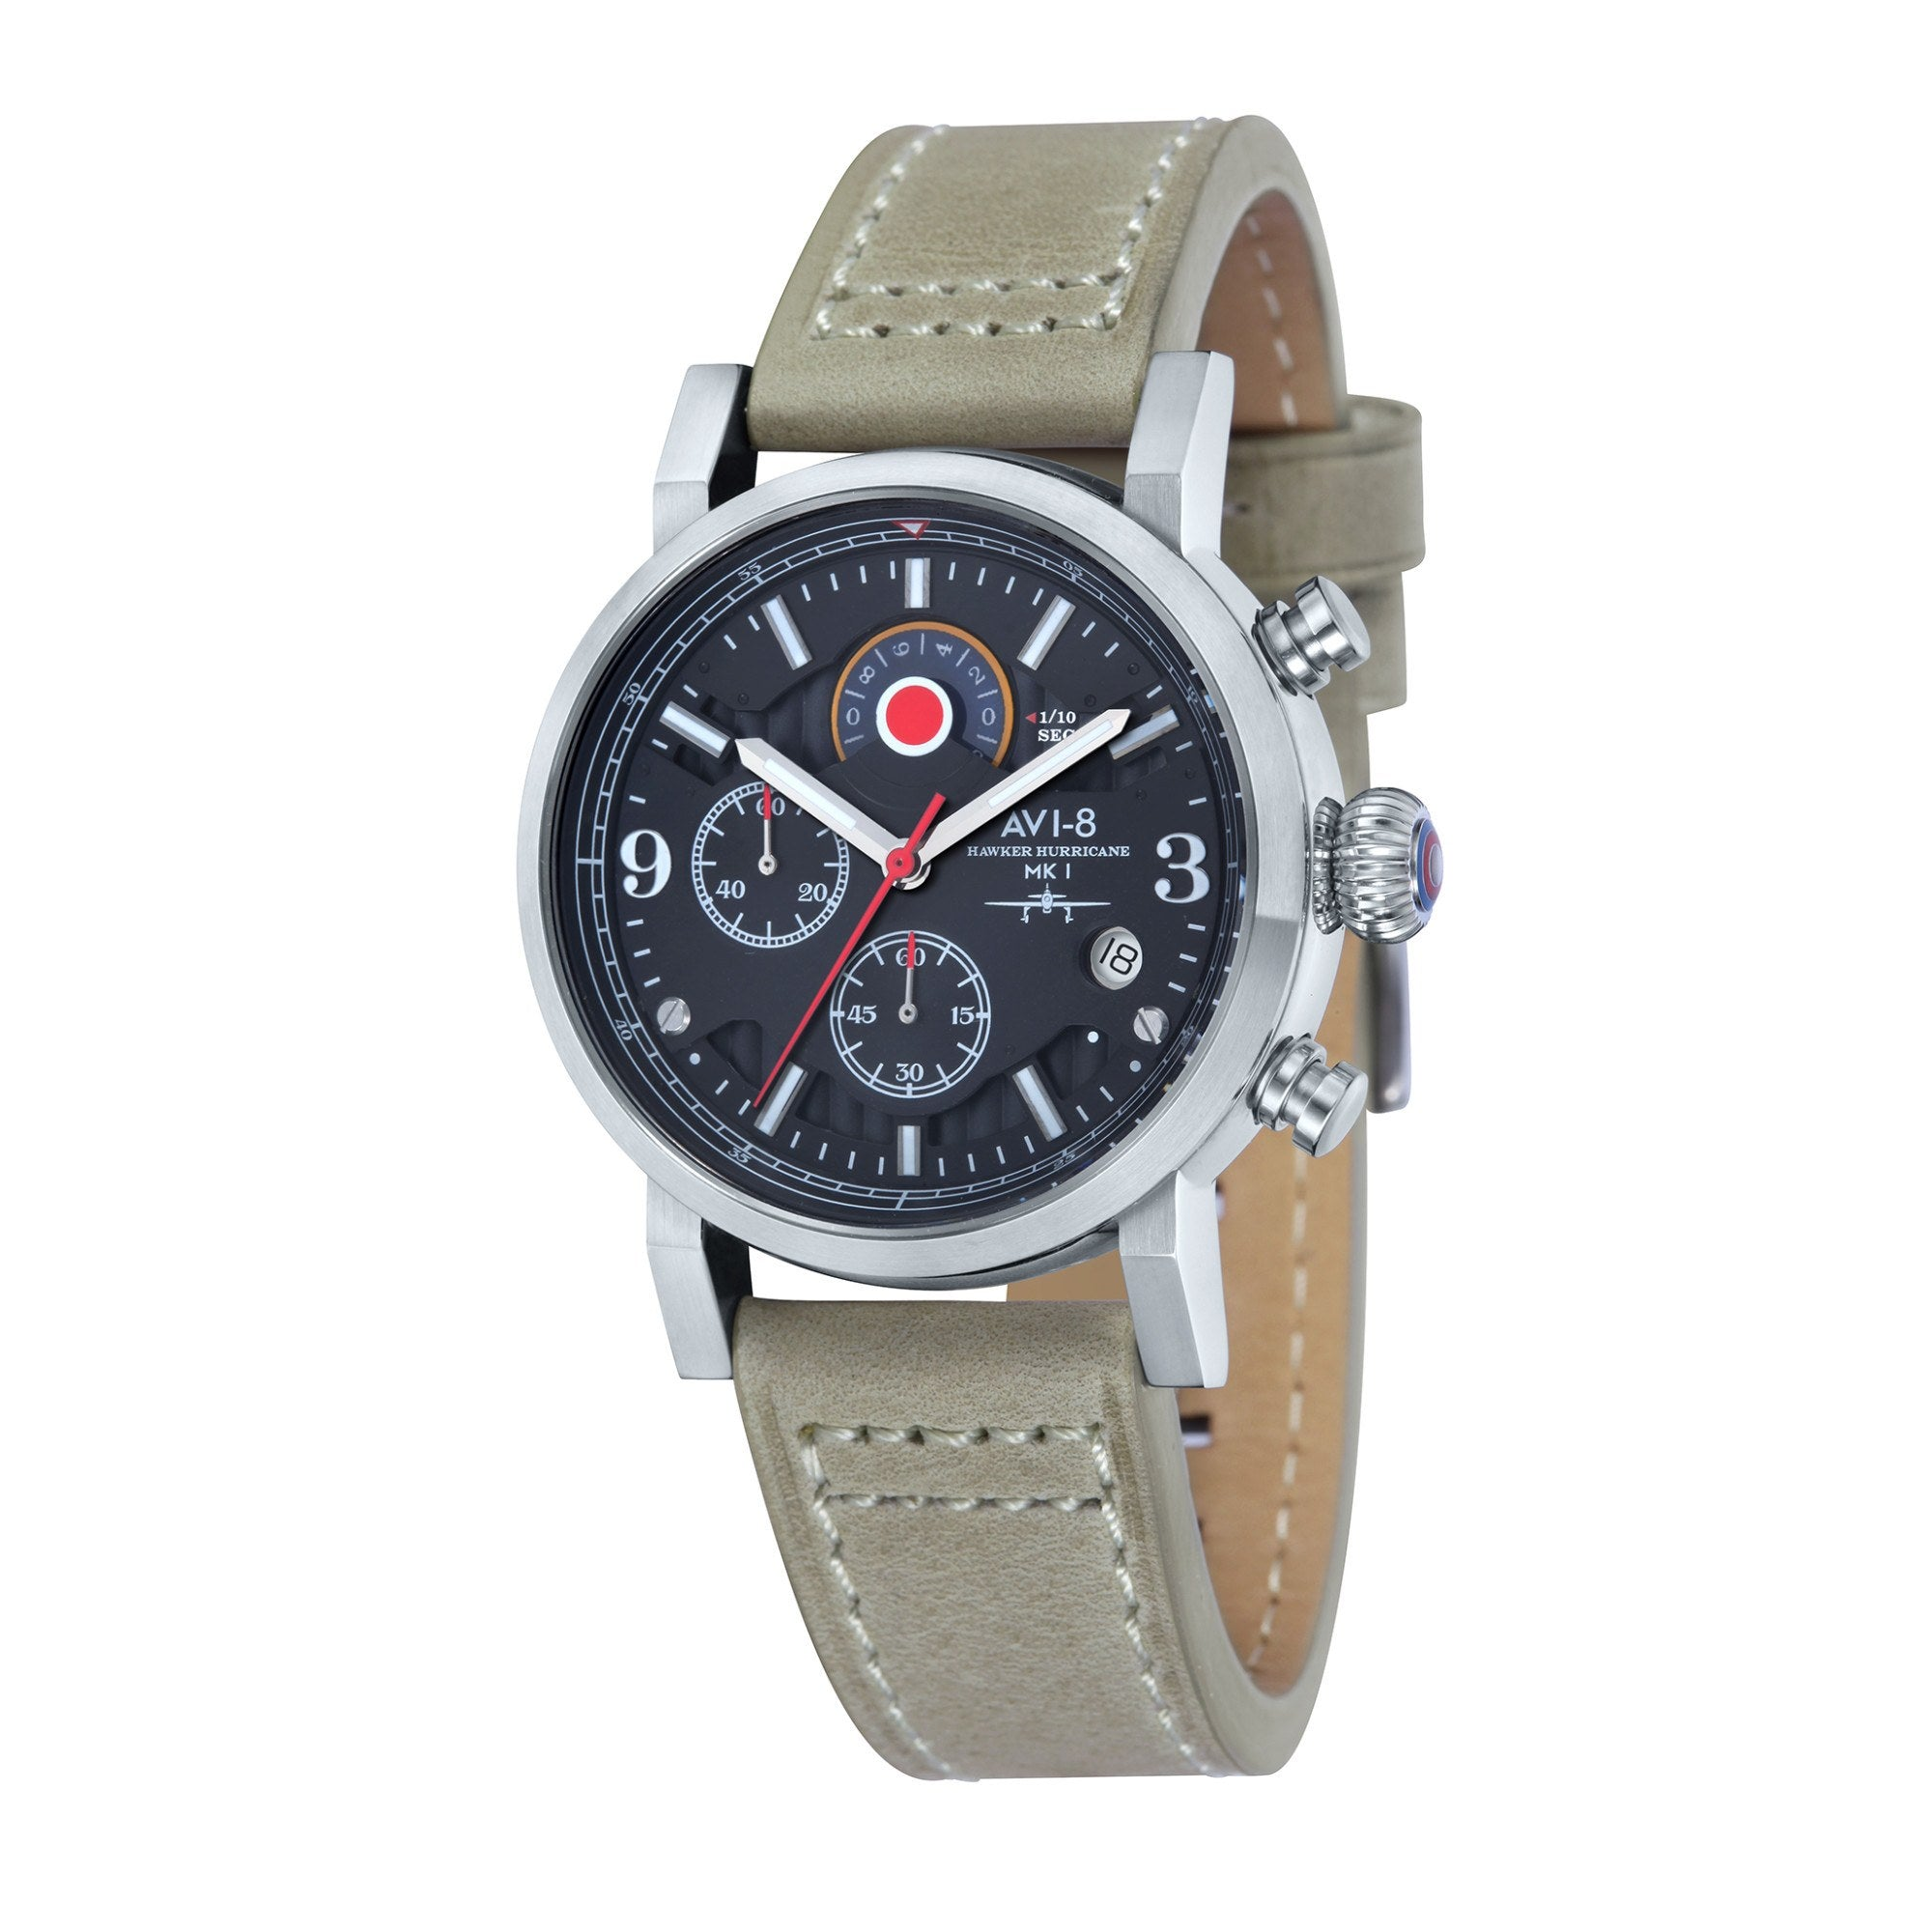 AVI-8 AVI-8 Men's Hawker Hurricane Quartz Chronograph Watch with Stone Genuine Leather Strap AV-4041-02